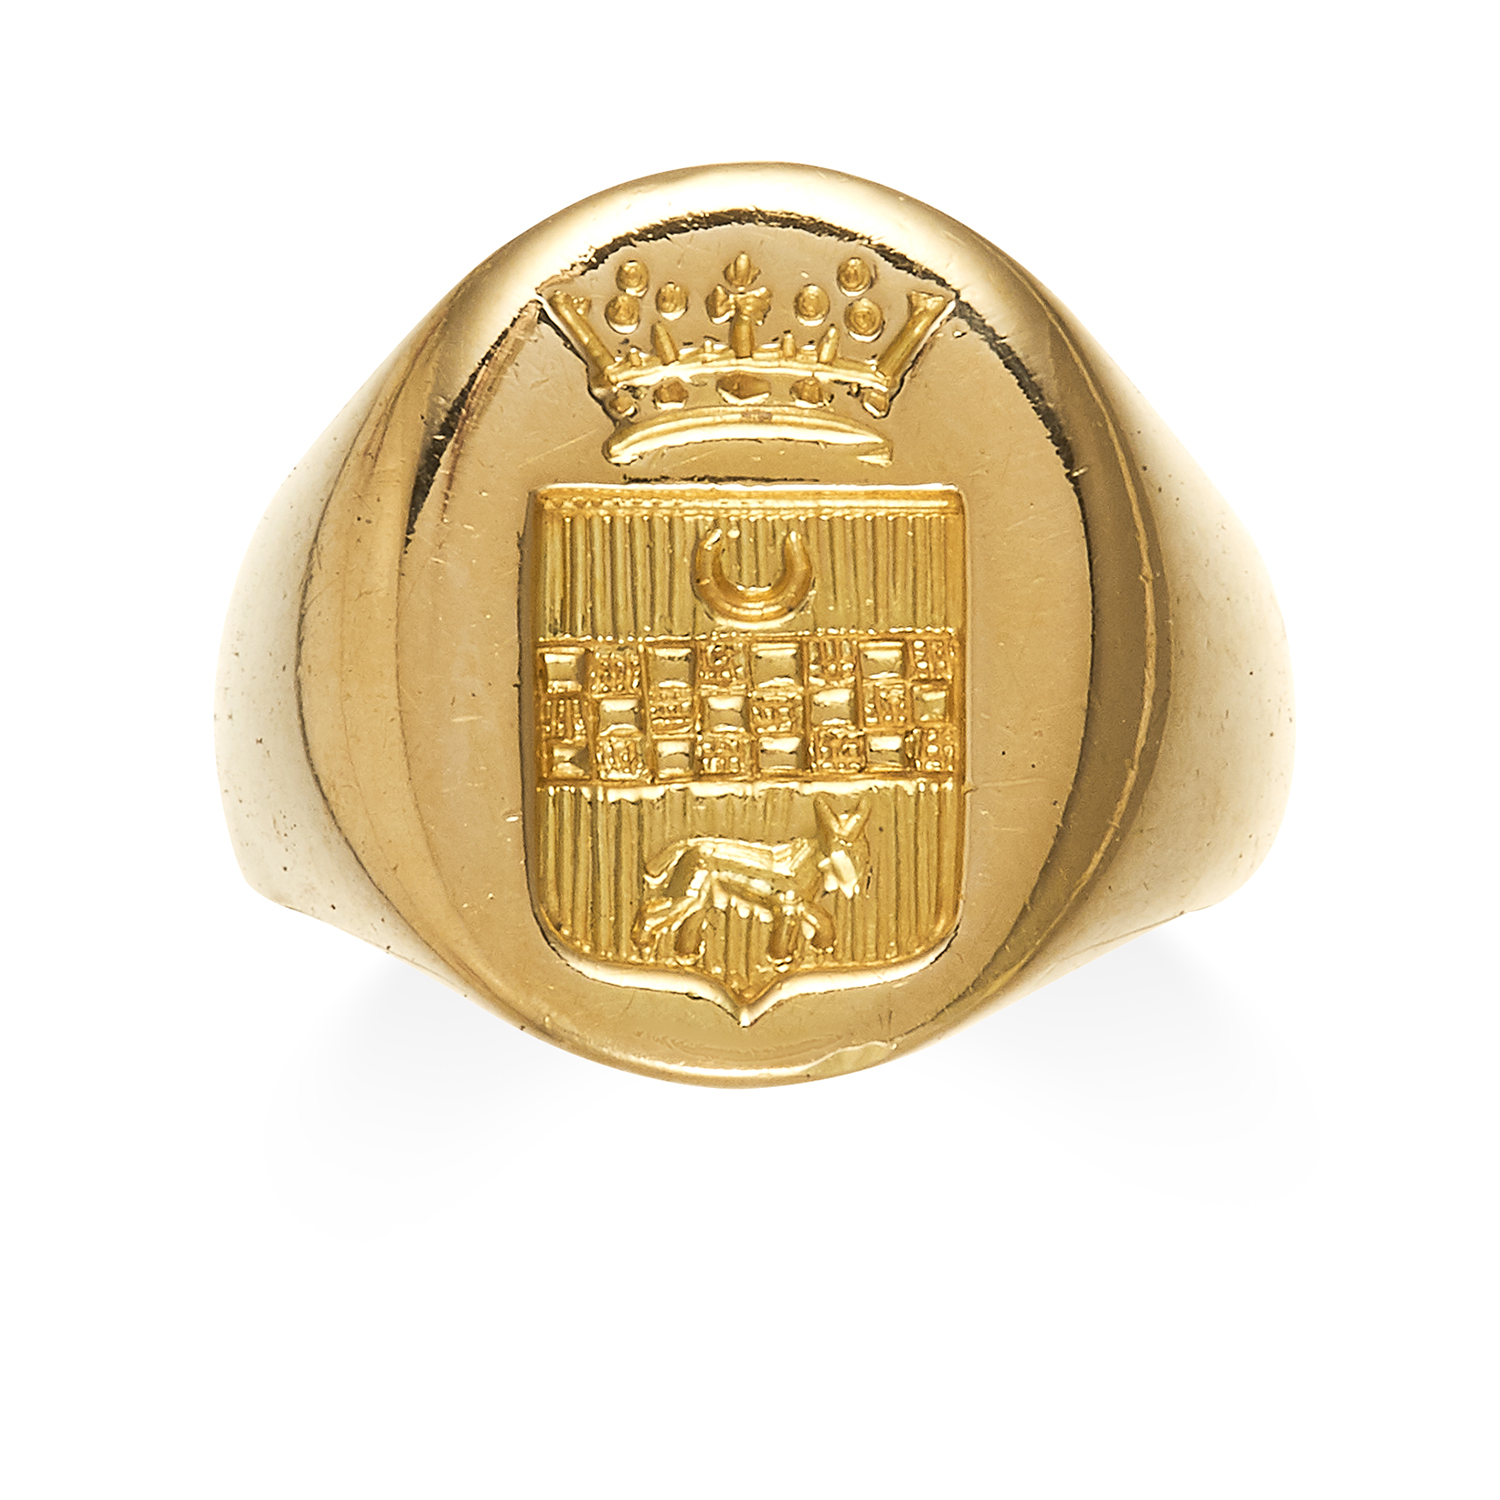 AN INTAGLIO SEAL SIGNET RING in high carat yellow gold, the oval face with a reverse engraved coat